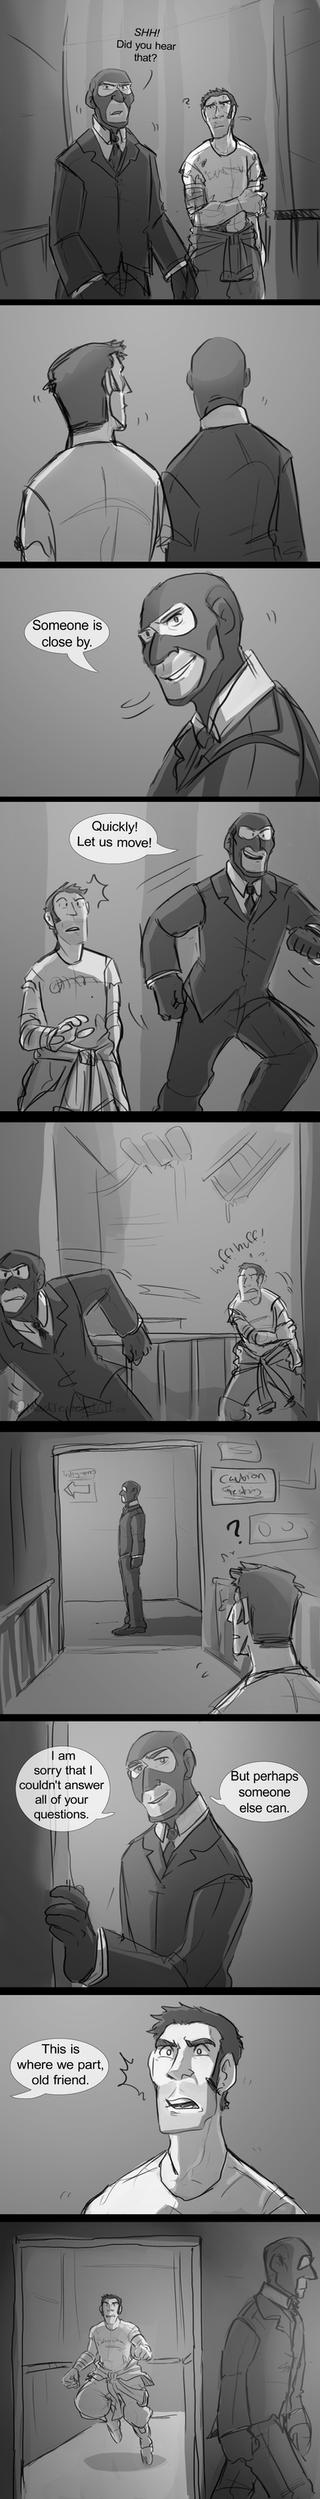 TF2-Long Lost Pg. 66 by MadJesters1